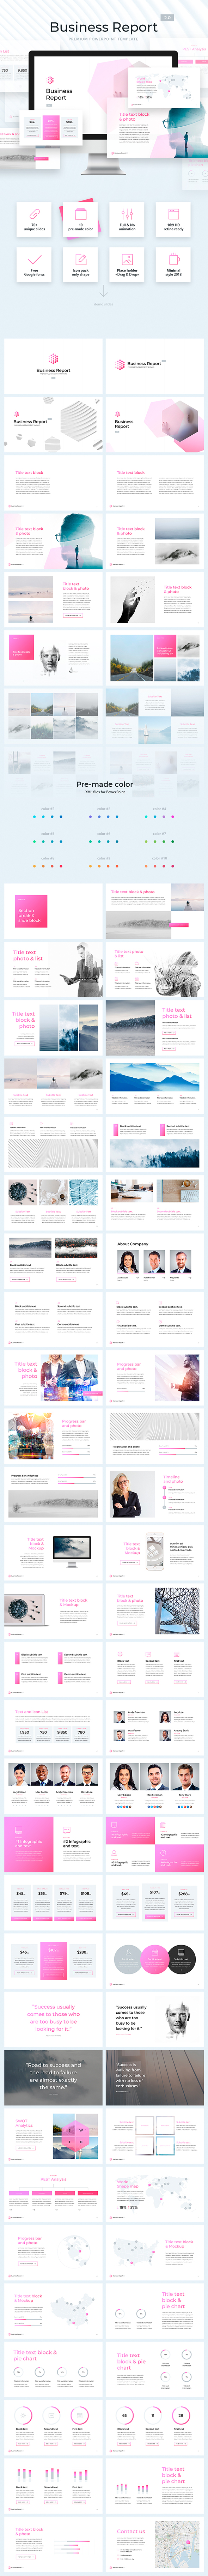 Business Report Template 2.0 - Business PowerPoint Templates